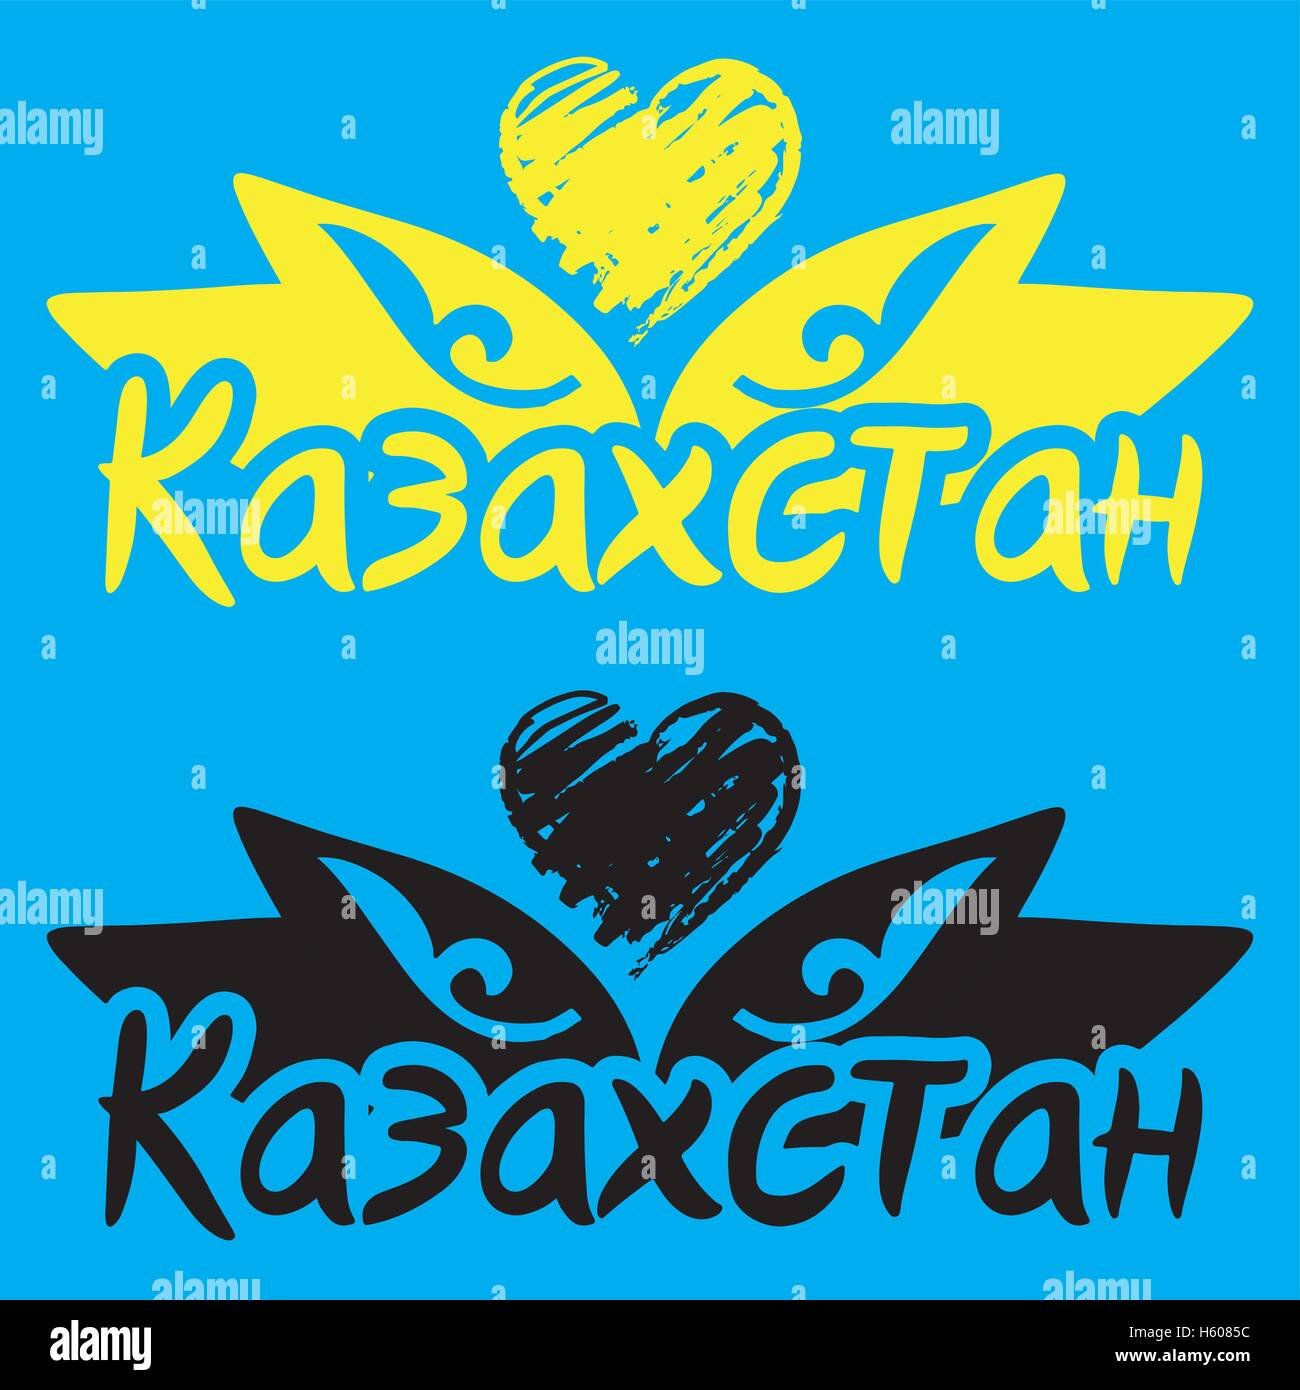 Republic of Kazakhstan logo art poster. Vector. EPS - Stock Vector